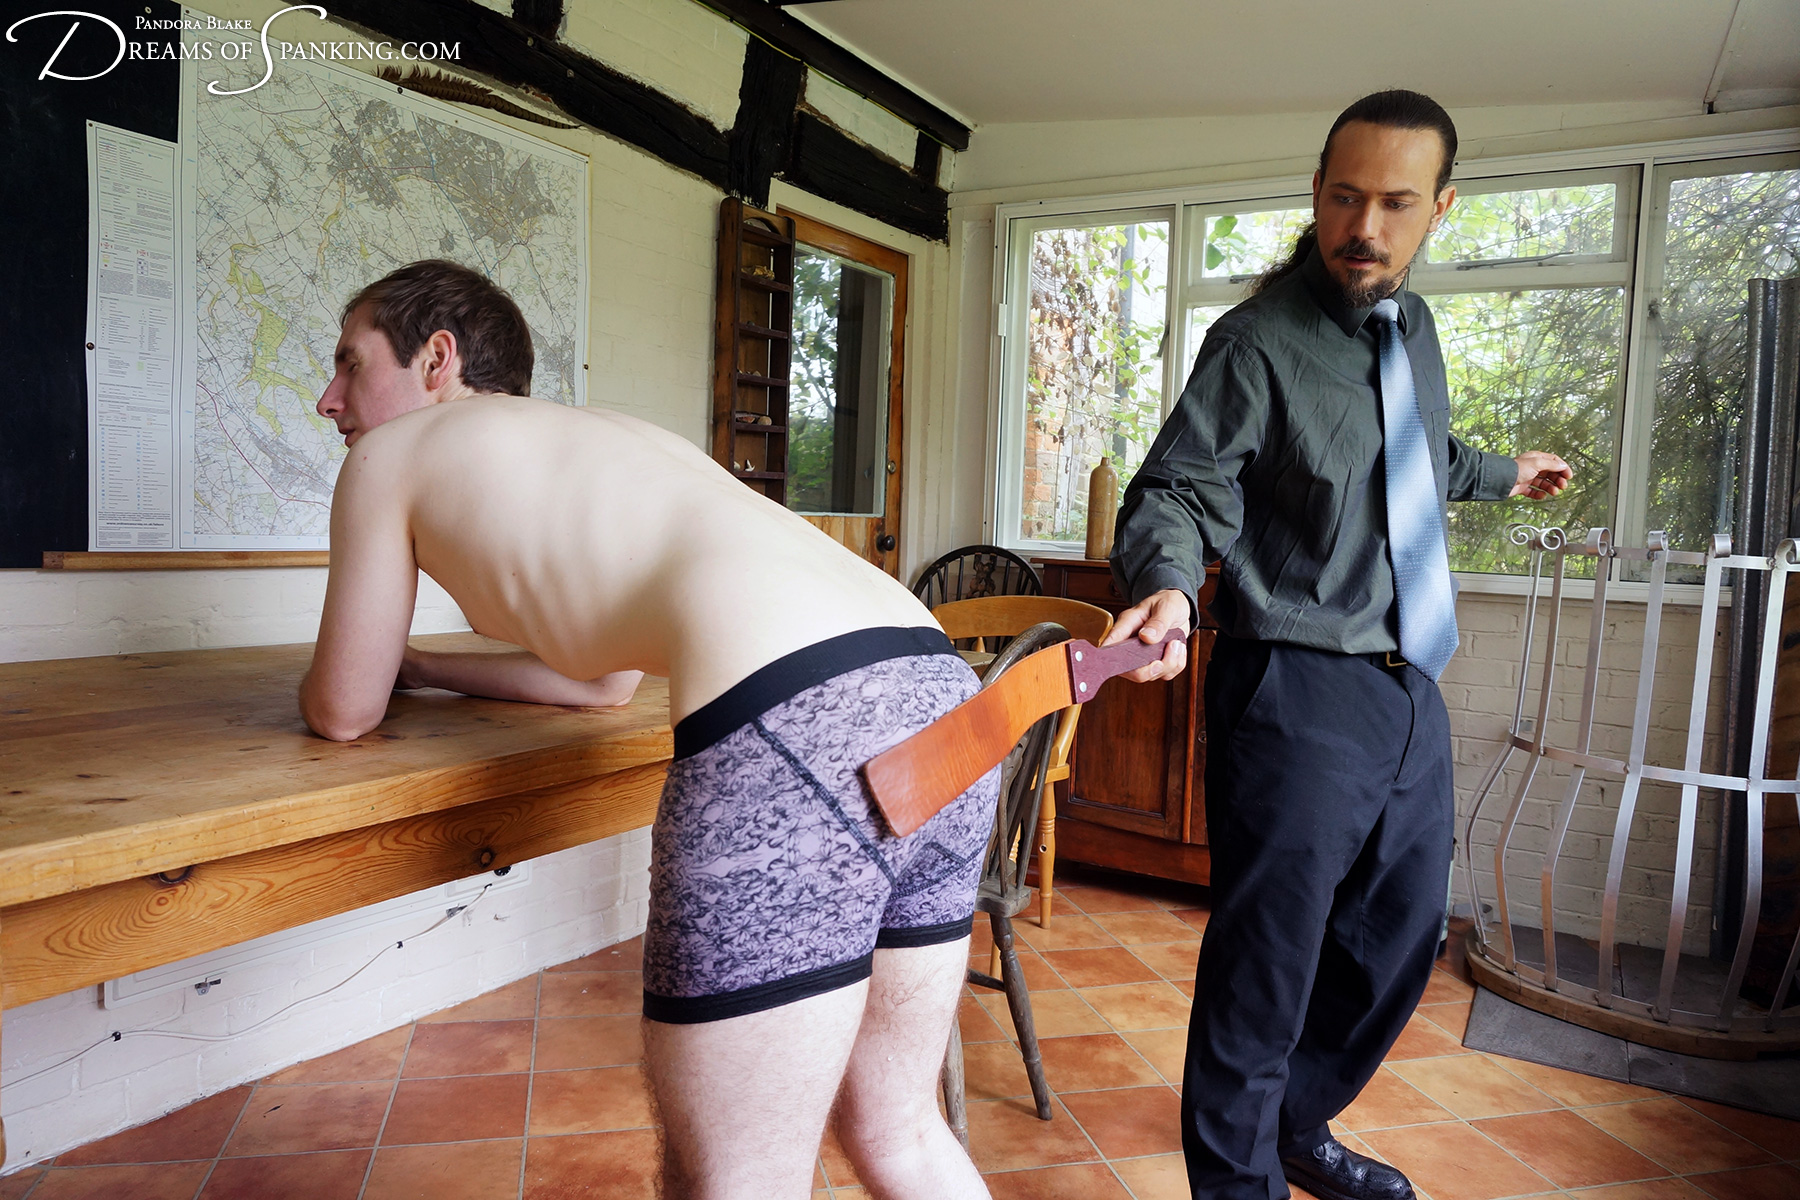 Son strapped over wet underwear by his strict dad at Dreams of Spanking